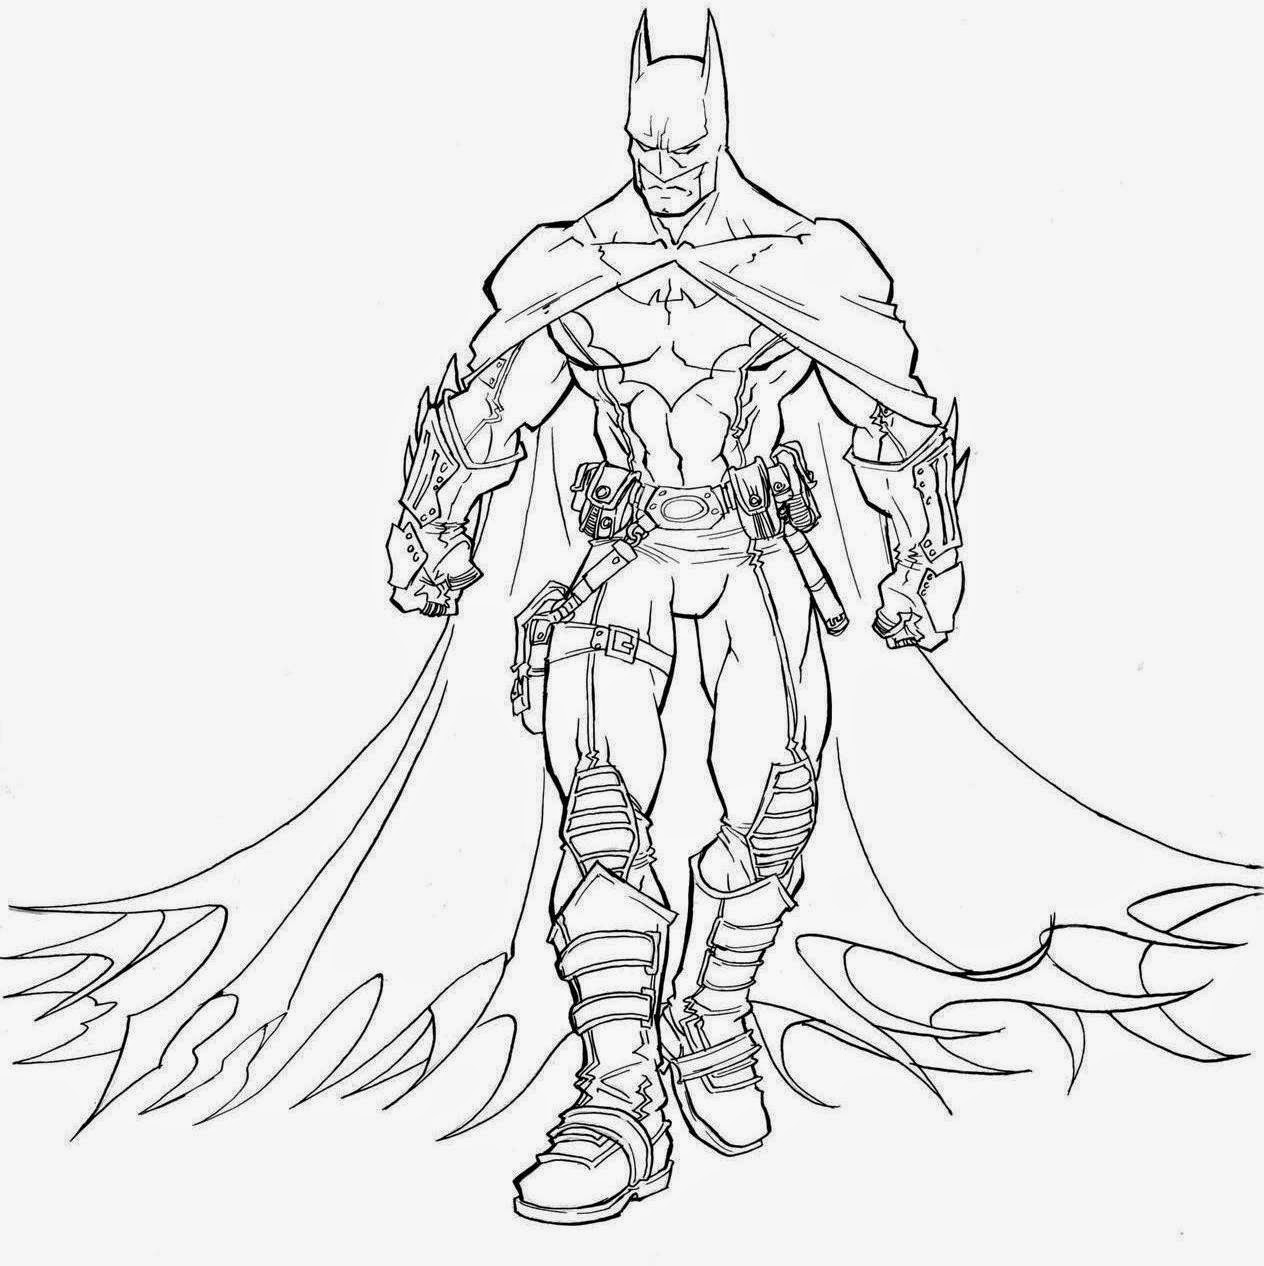 Drawn wallpaper batman Drawing Wallpaper: wallpaperd Colour Drawing